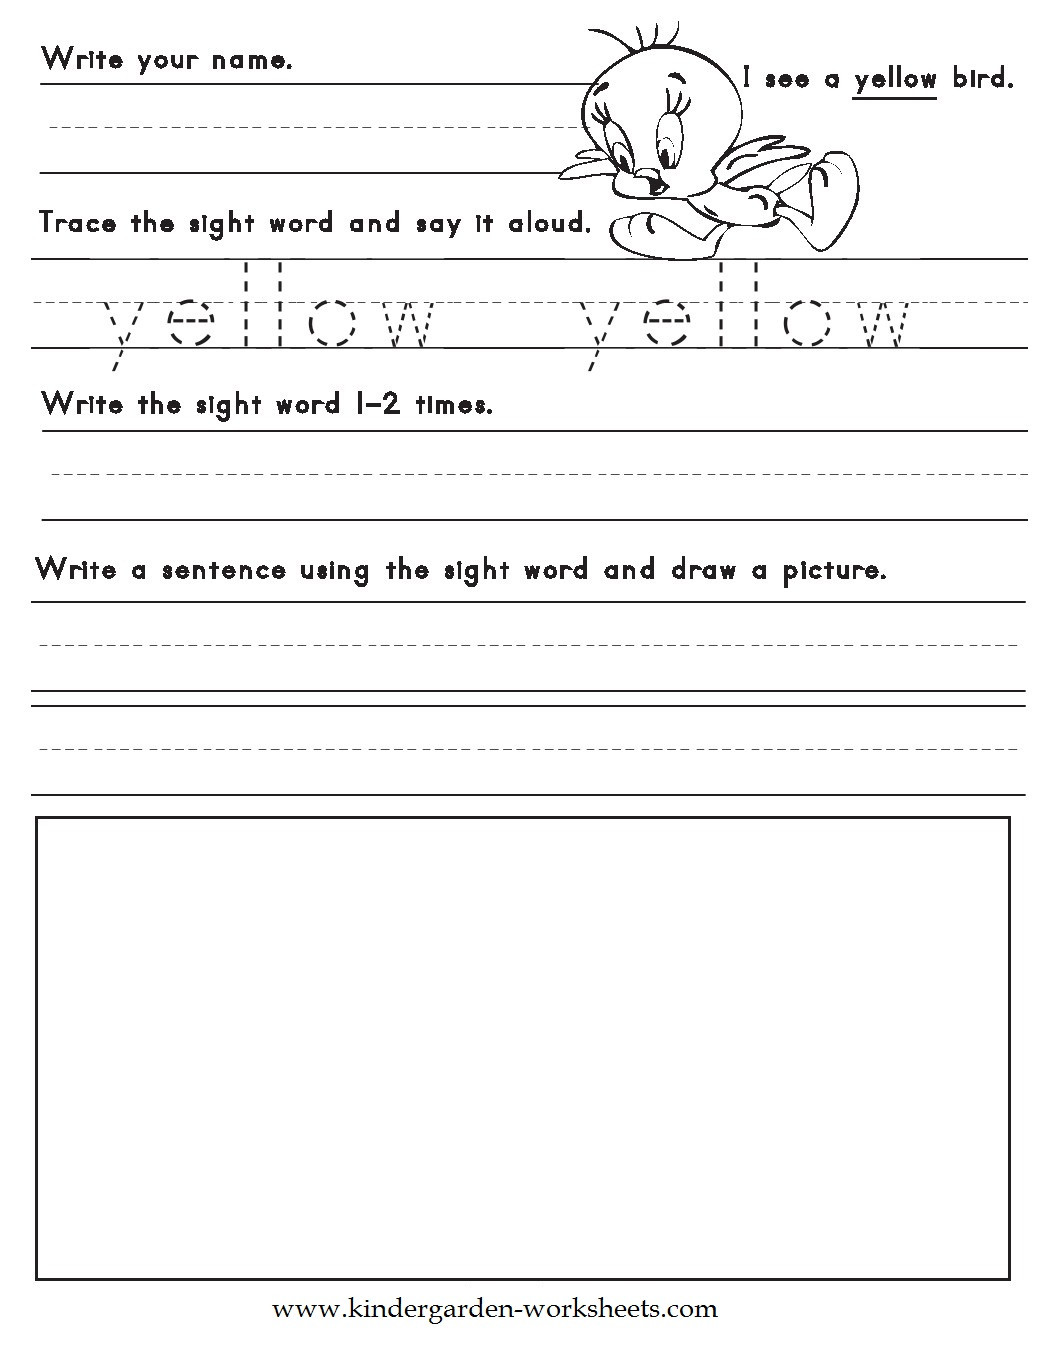 Color Words Handwriting Worksheets Kindergarten Worksheets Color Words Worksheets Yellow